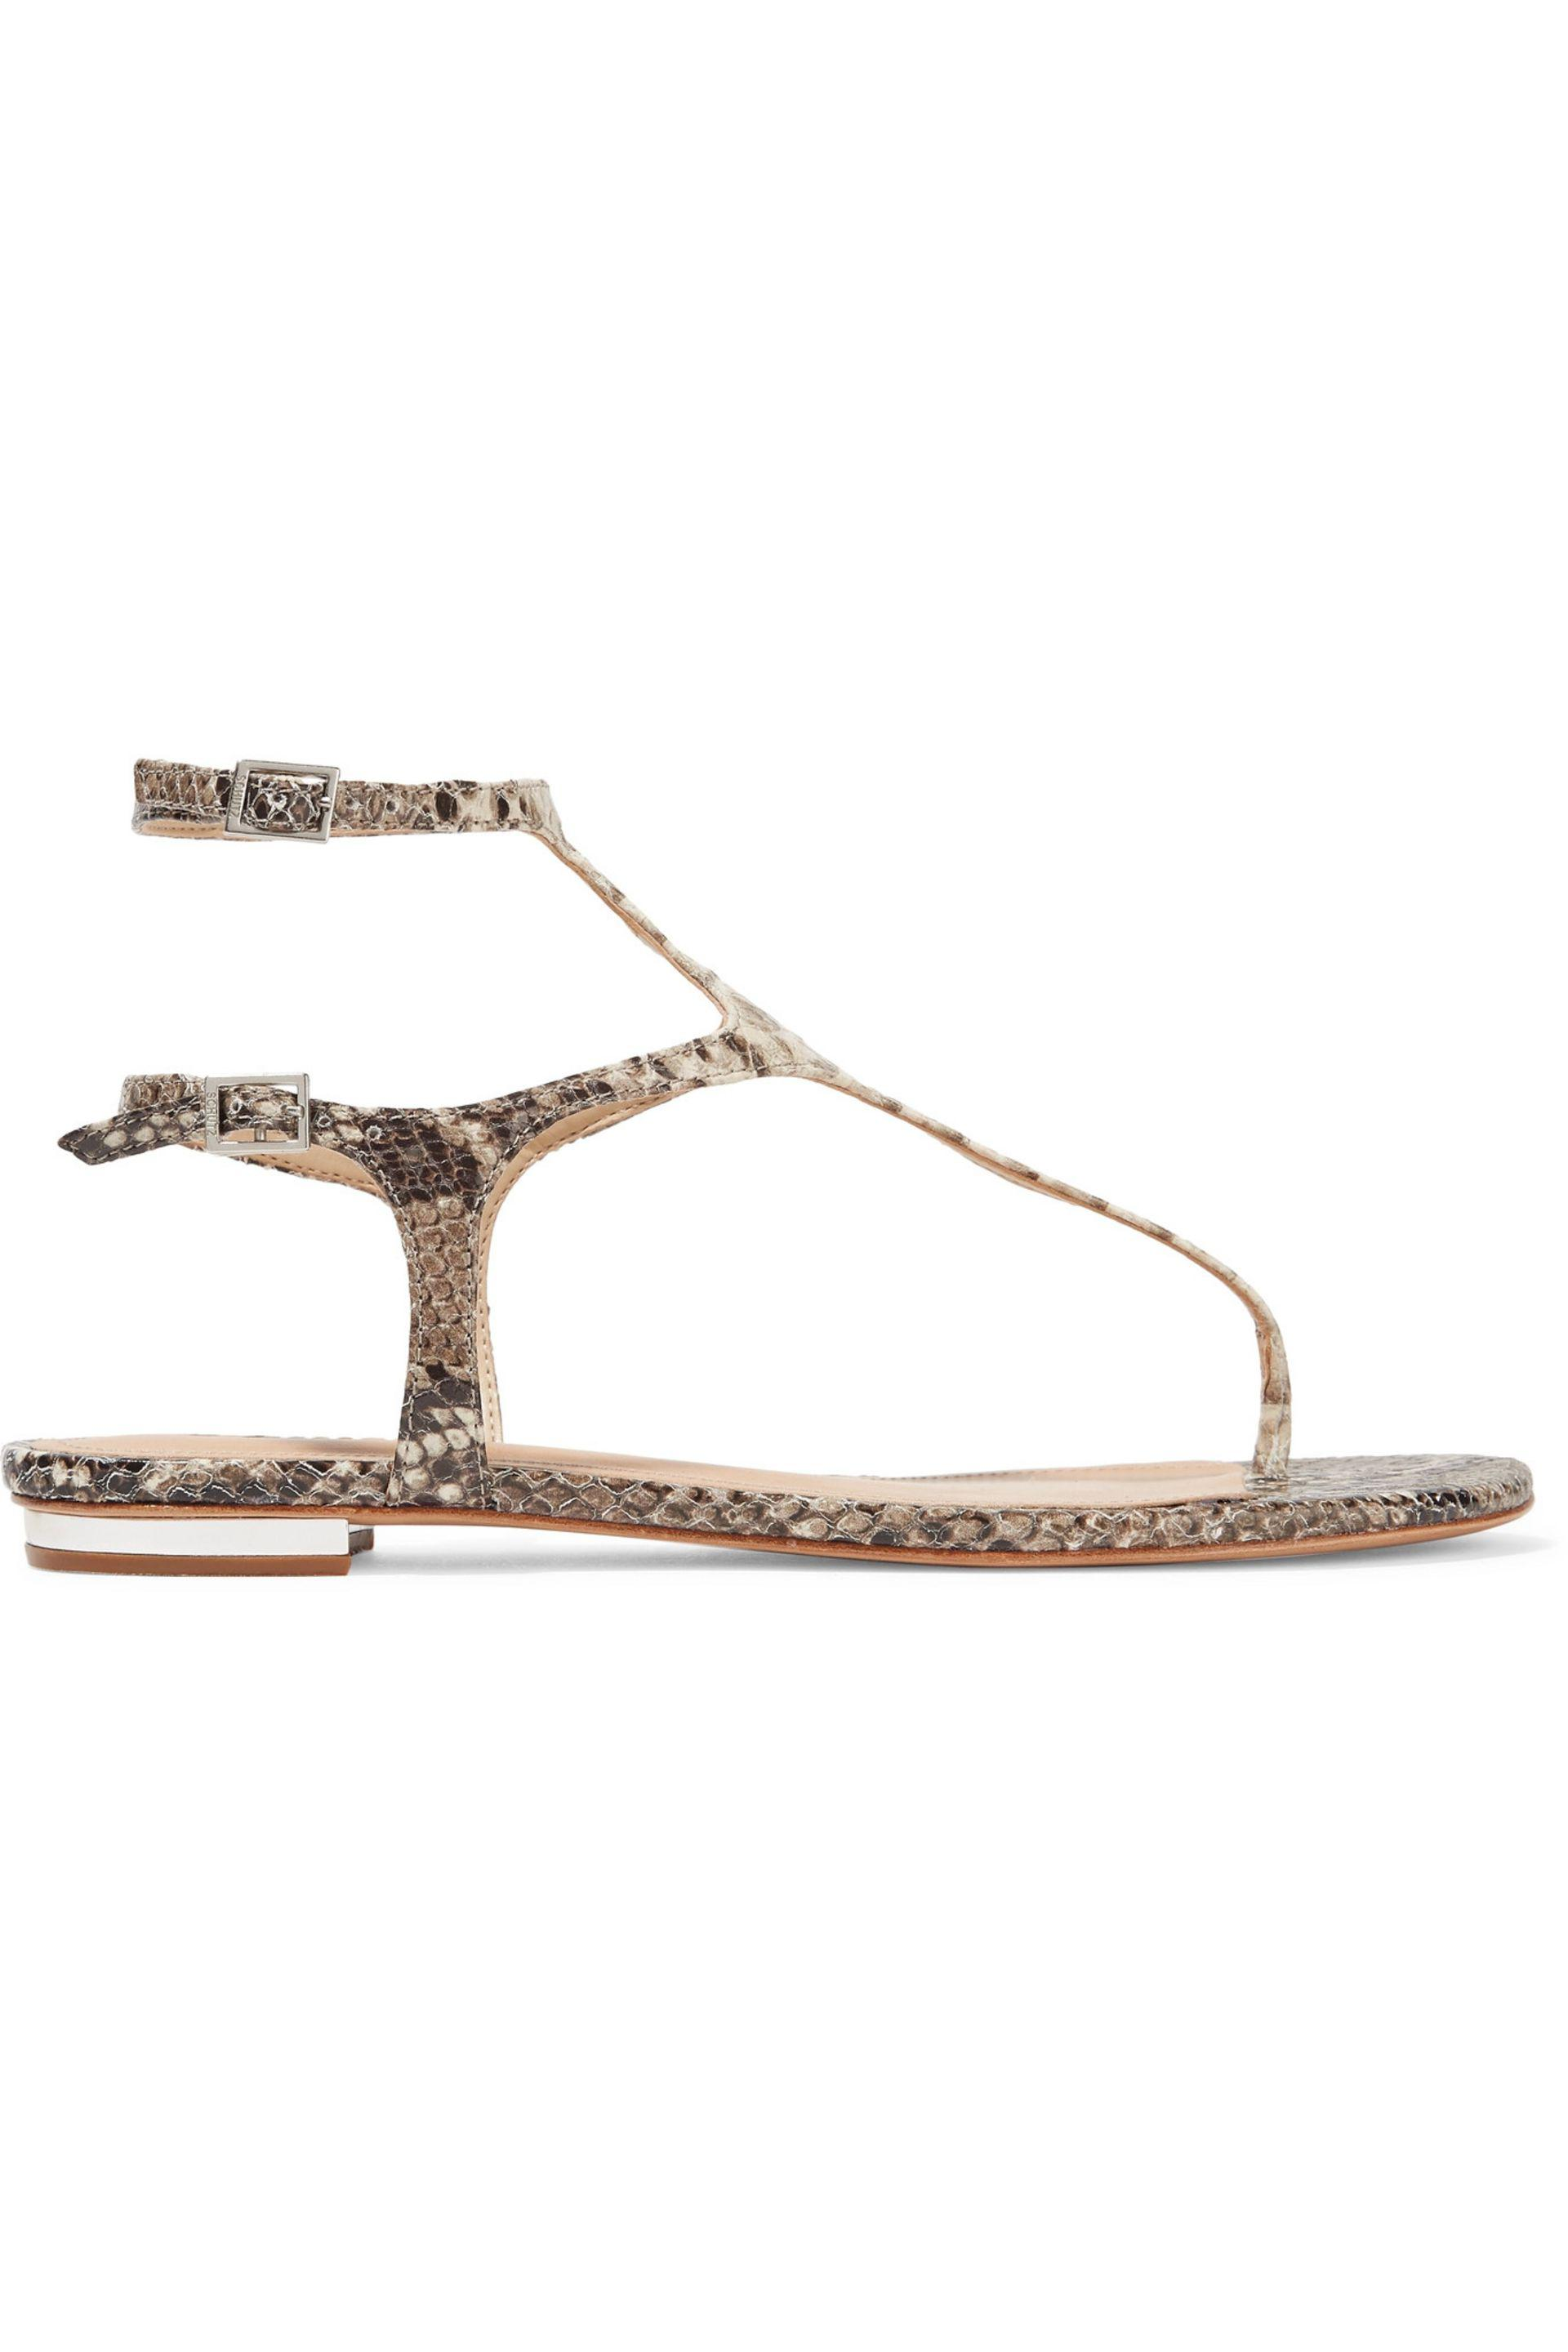 ce4e432d465a4c Lyst - Schutz Galey Snake-effect Leather Sandals in White